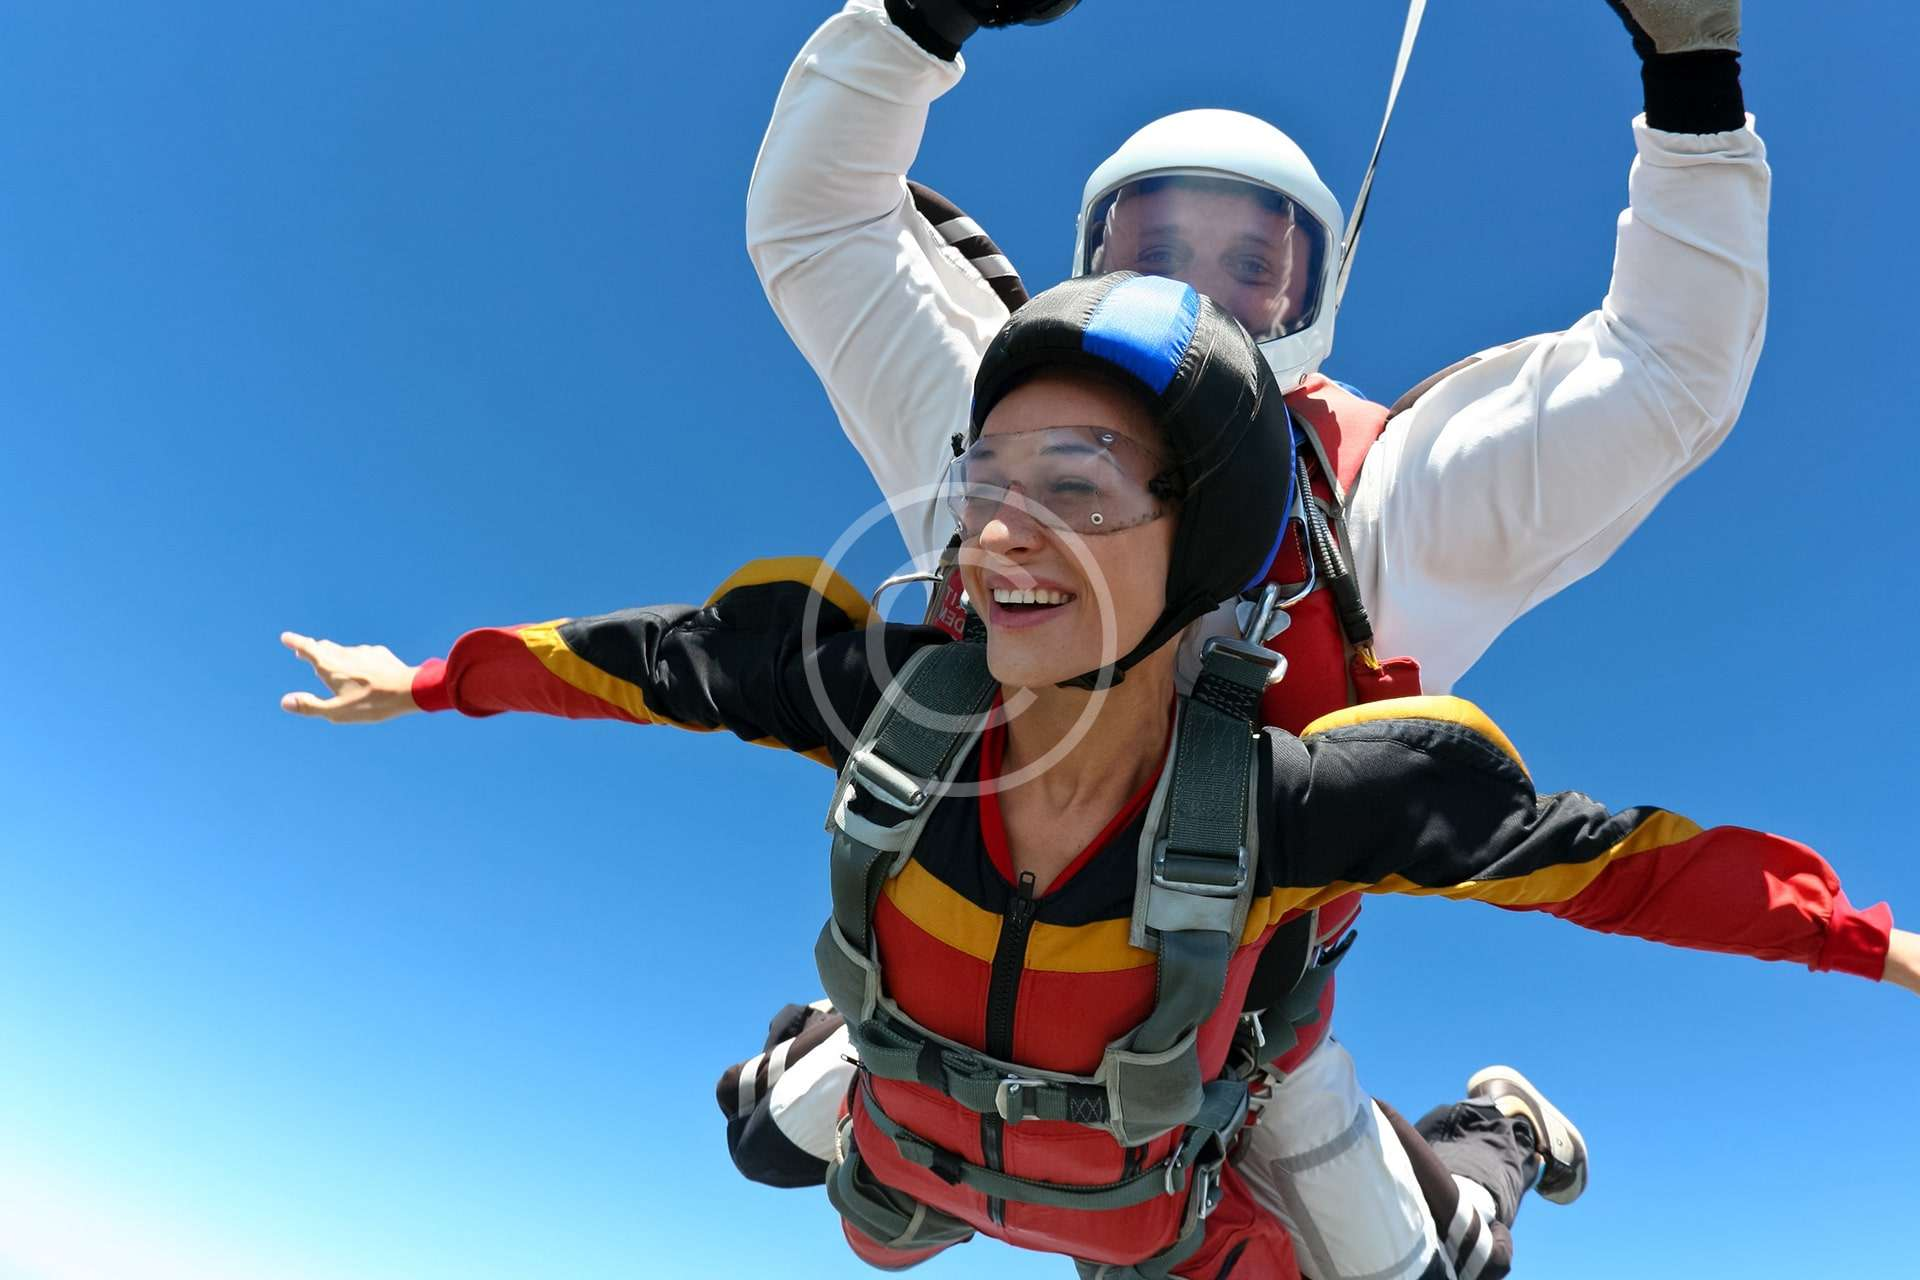 Skydiving Professional Class